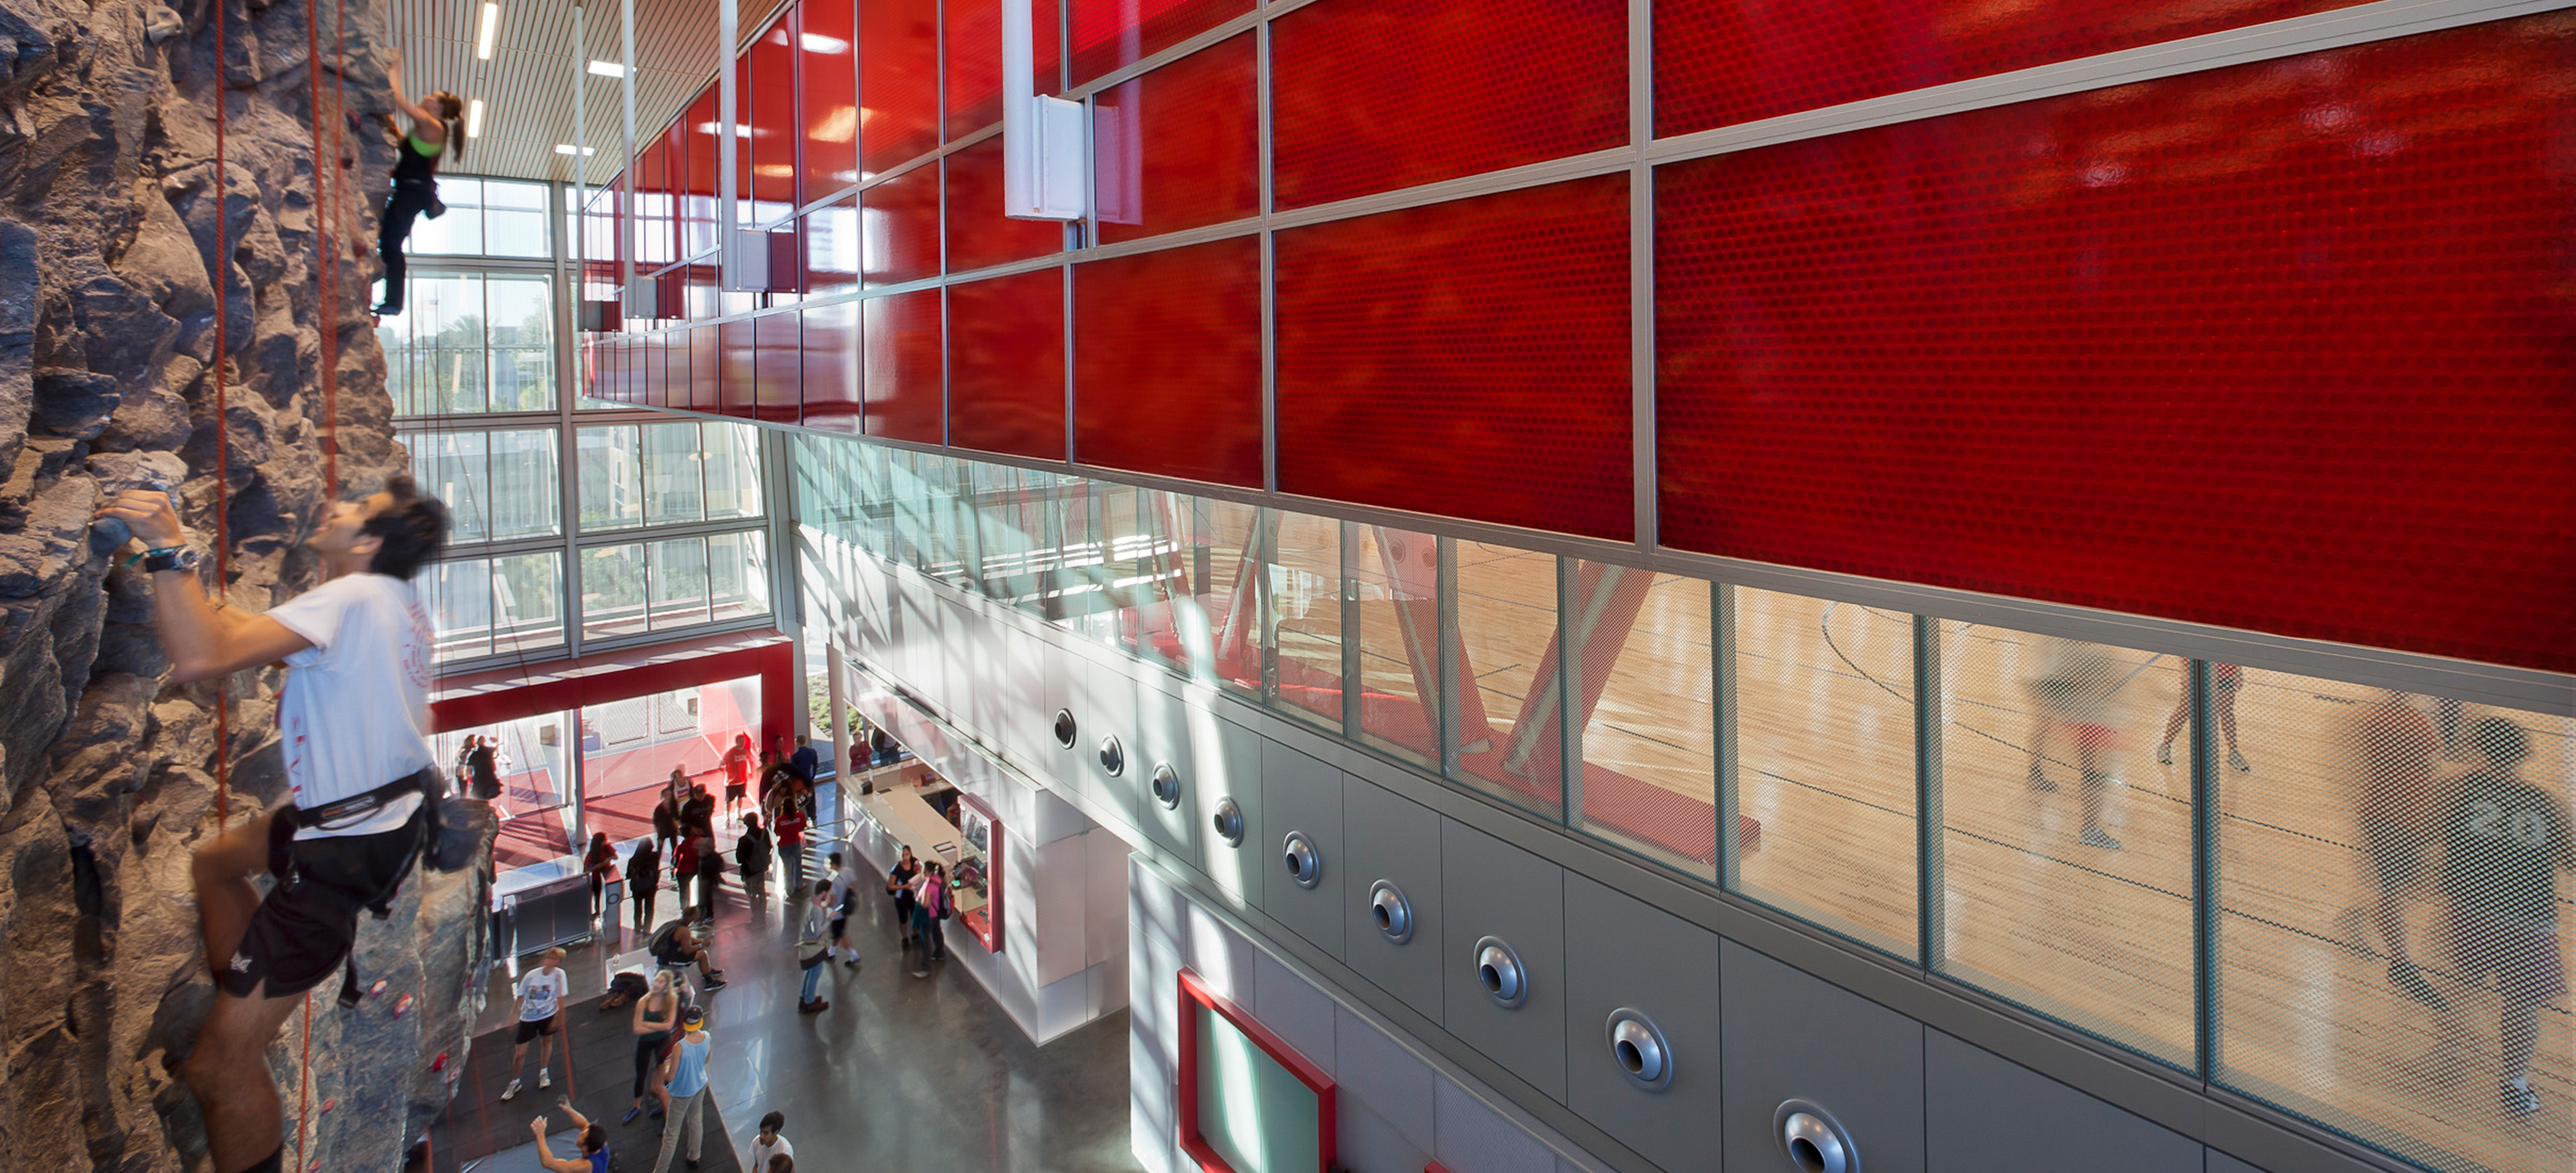 LPA Higher Education Projects Recognized for Excellence in Architecture